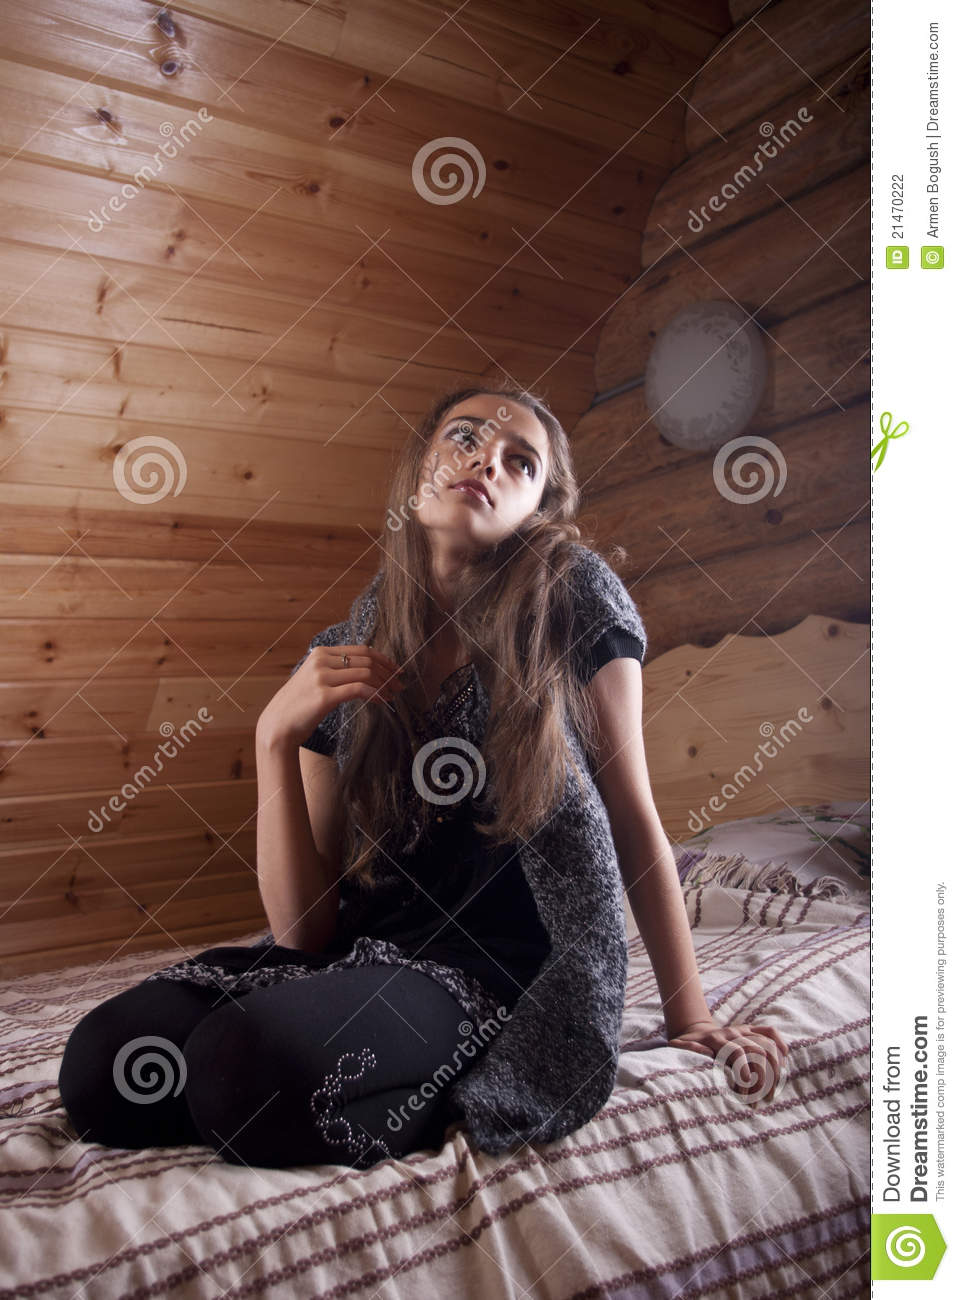 Girl In Black Jersey Sitting On Bed Stock Photo  Image